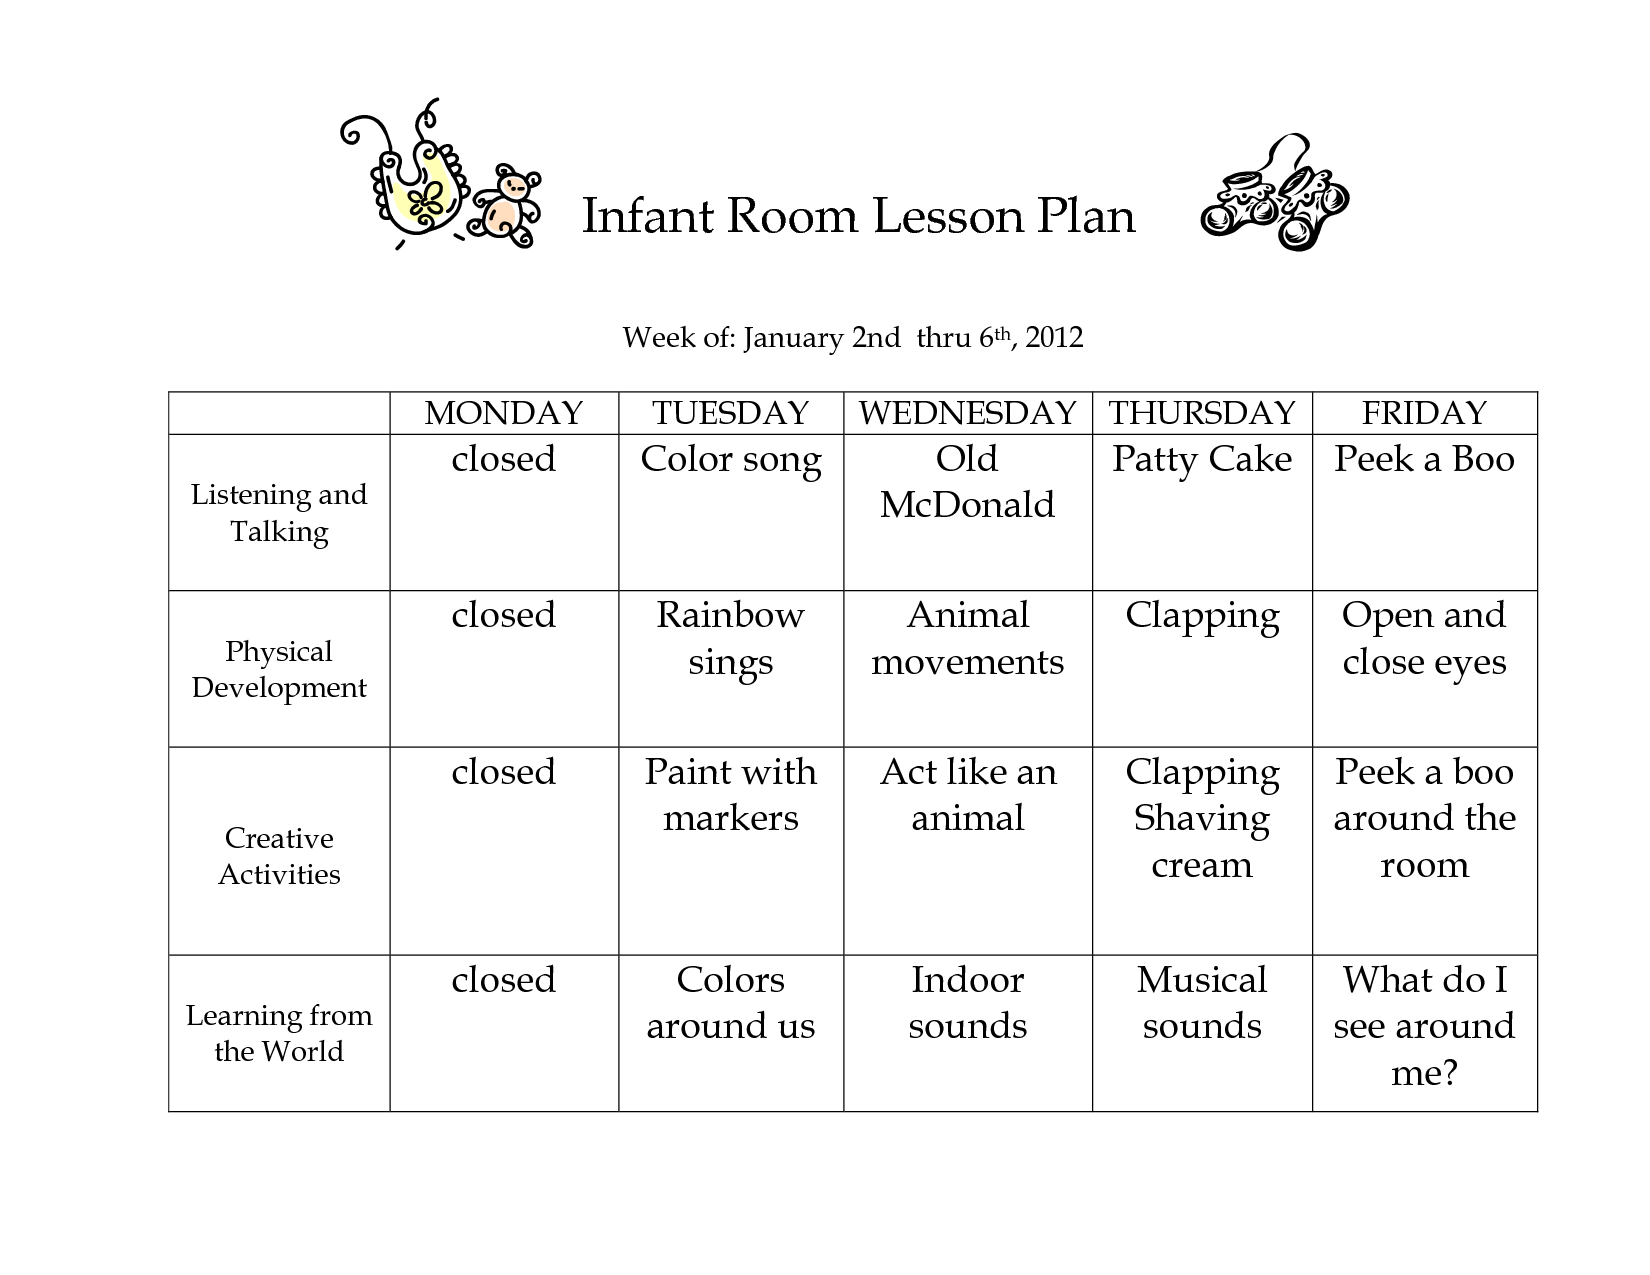 Image Result For Child Care Schedule For Toddlers  Learning